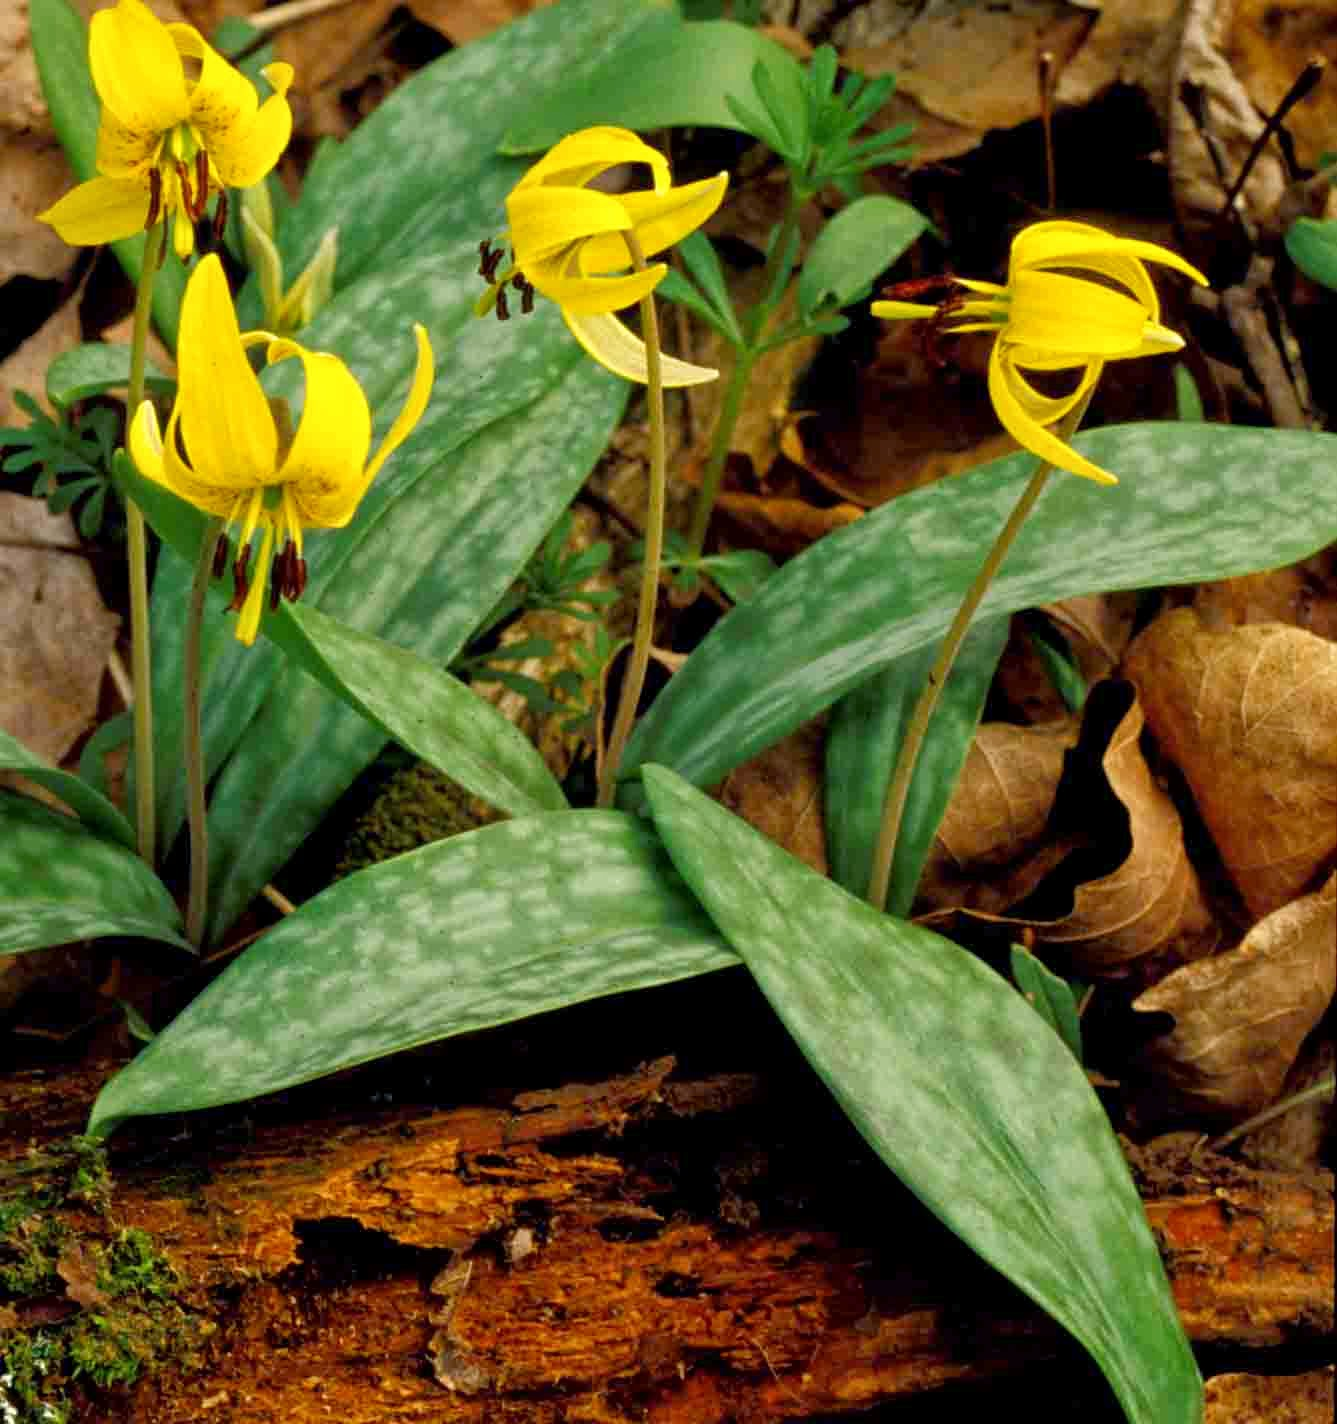 Native Plants: Kentucky Native Plant And Wildlife: April 2014